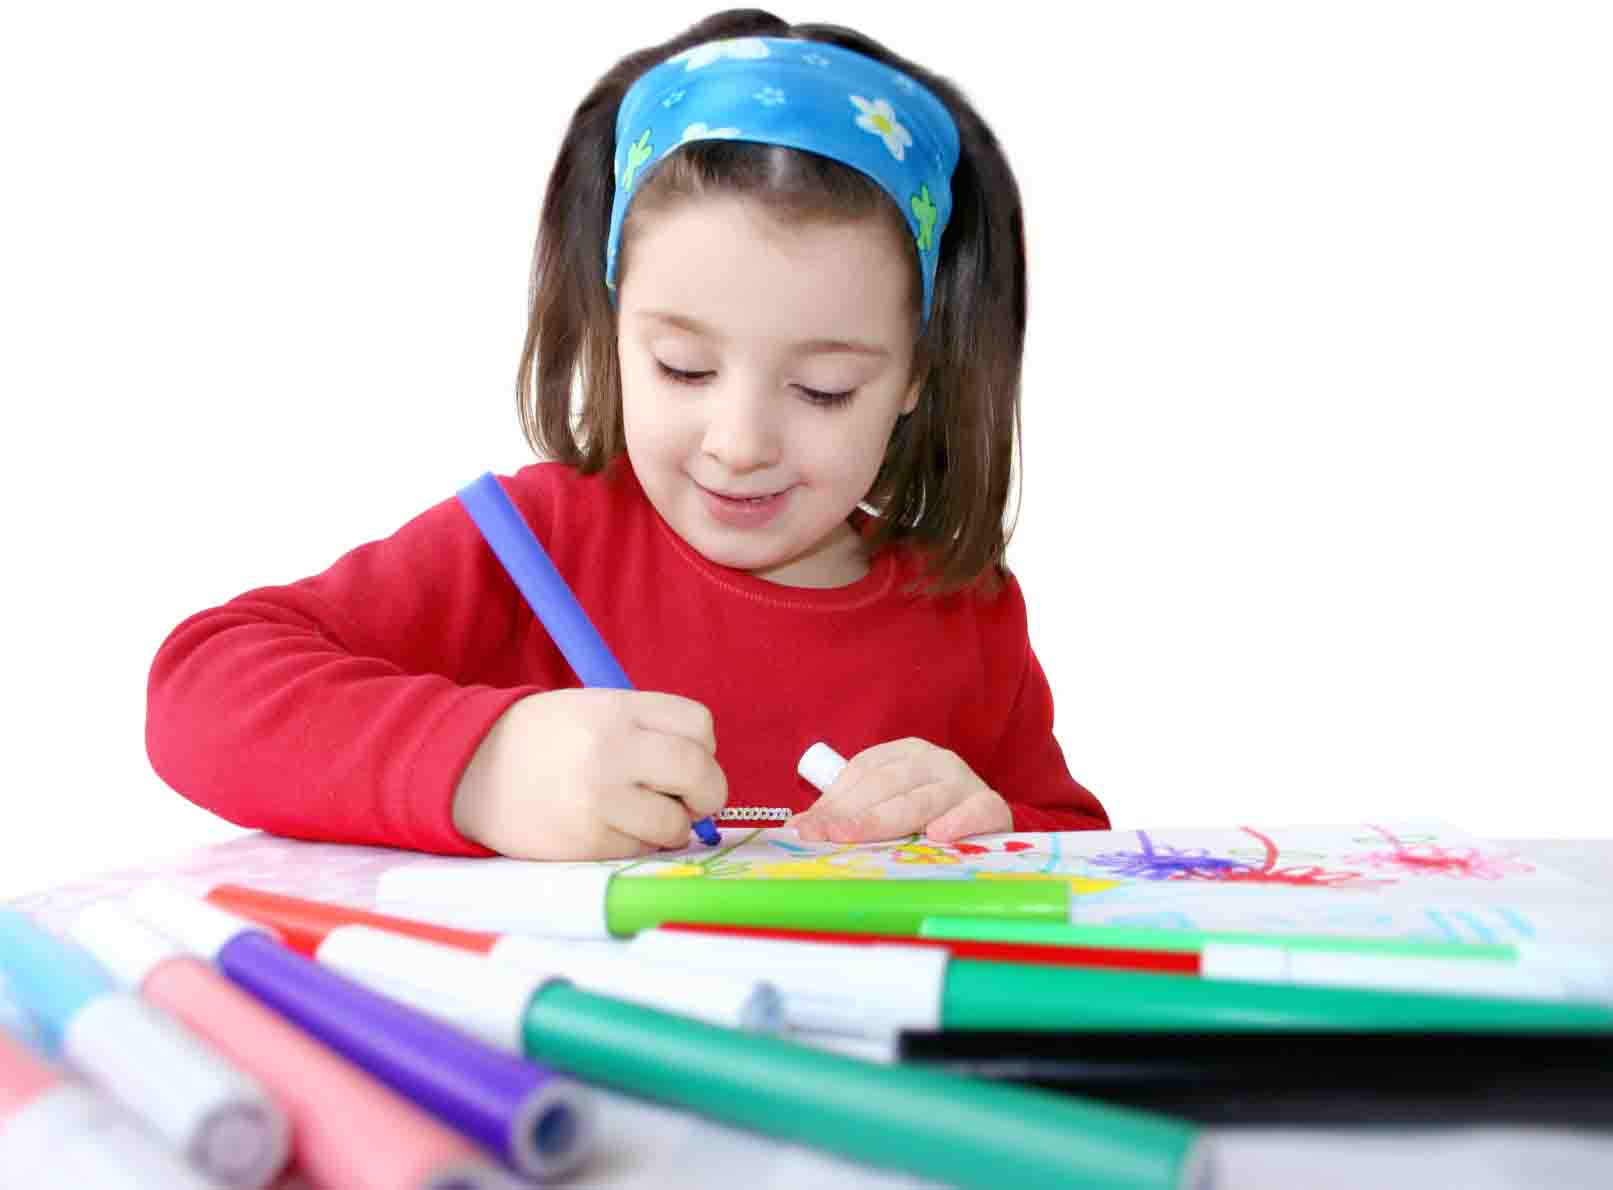 child case study 3 year old Child development child case study 9 write an in-depth case study of one of the children you observed in the previous assignment, a child between the ages of birth and 12 years old explicit details for this case study are available online in ecollege: docsharing.